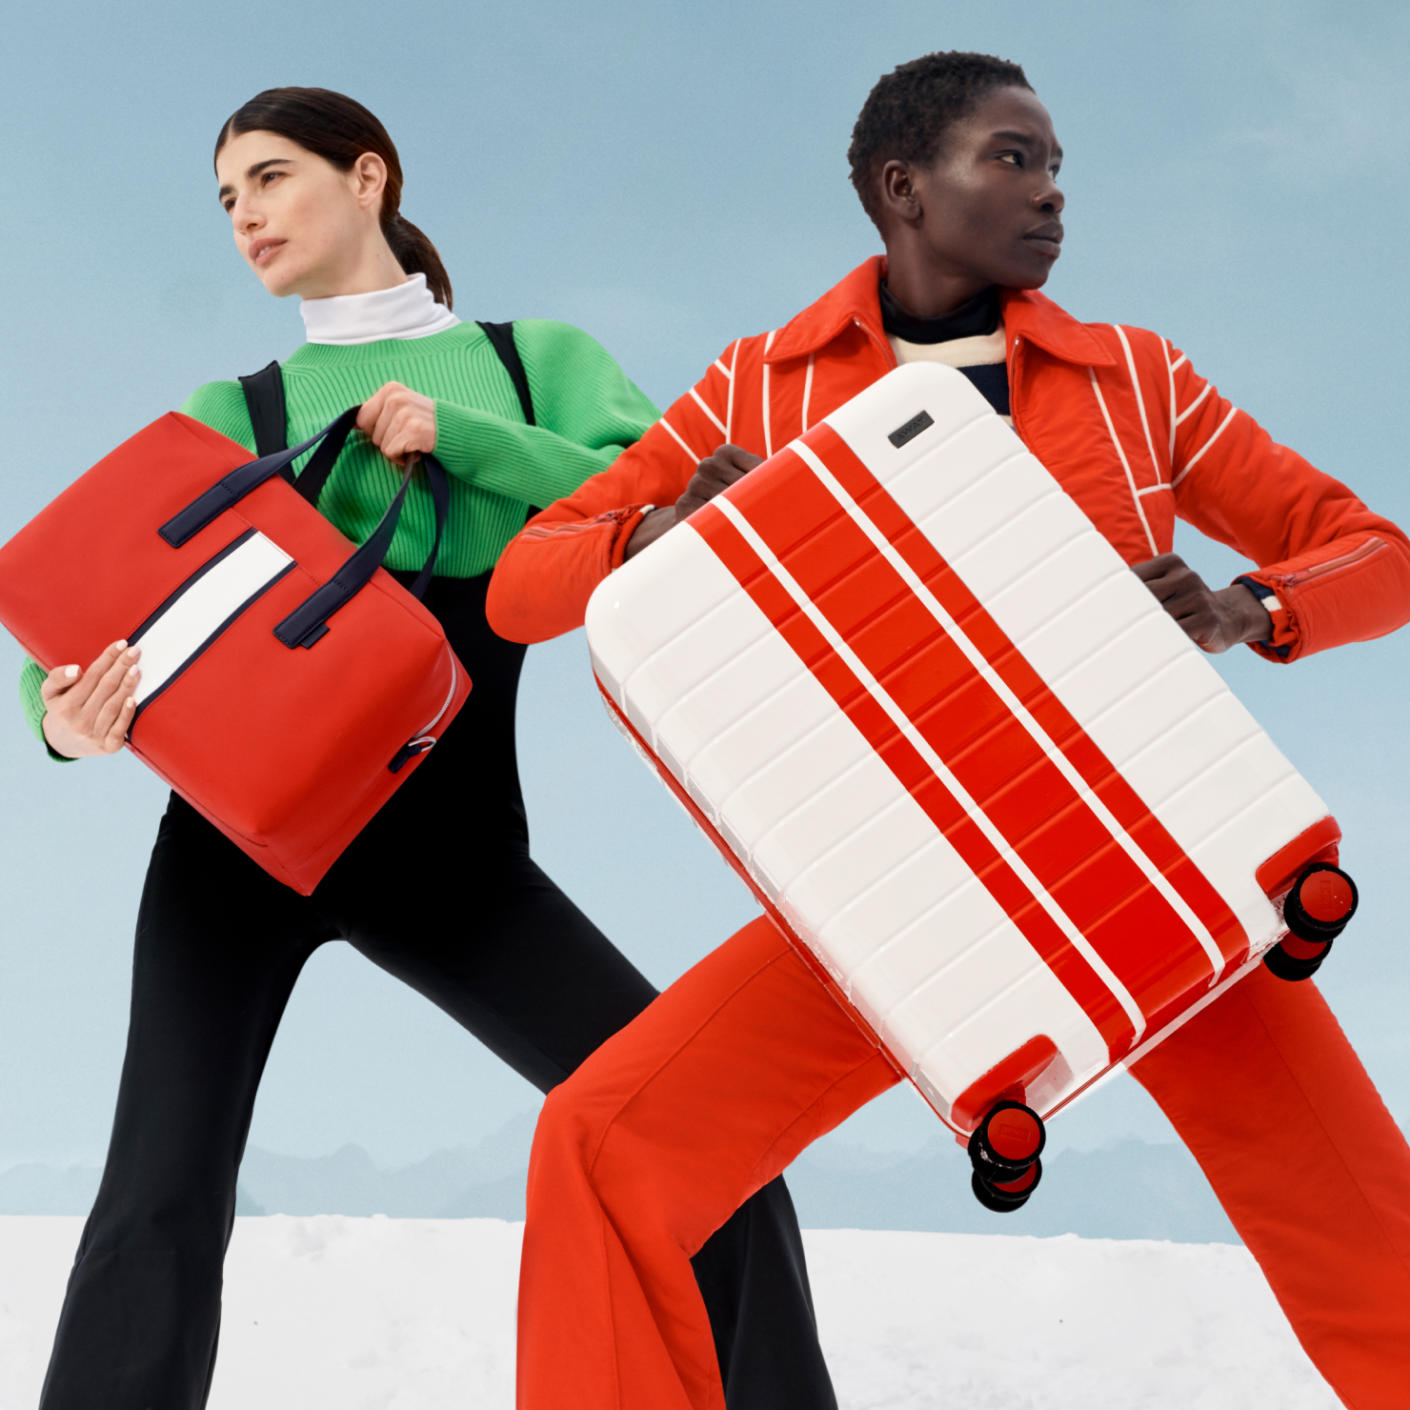 Two people, one holding a white carry-on suitcase (red stripe) and the other a red everywhere bag (white stripe).